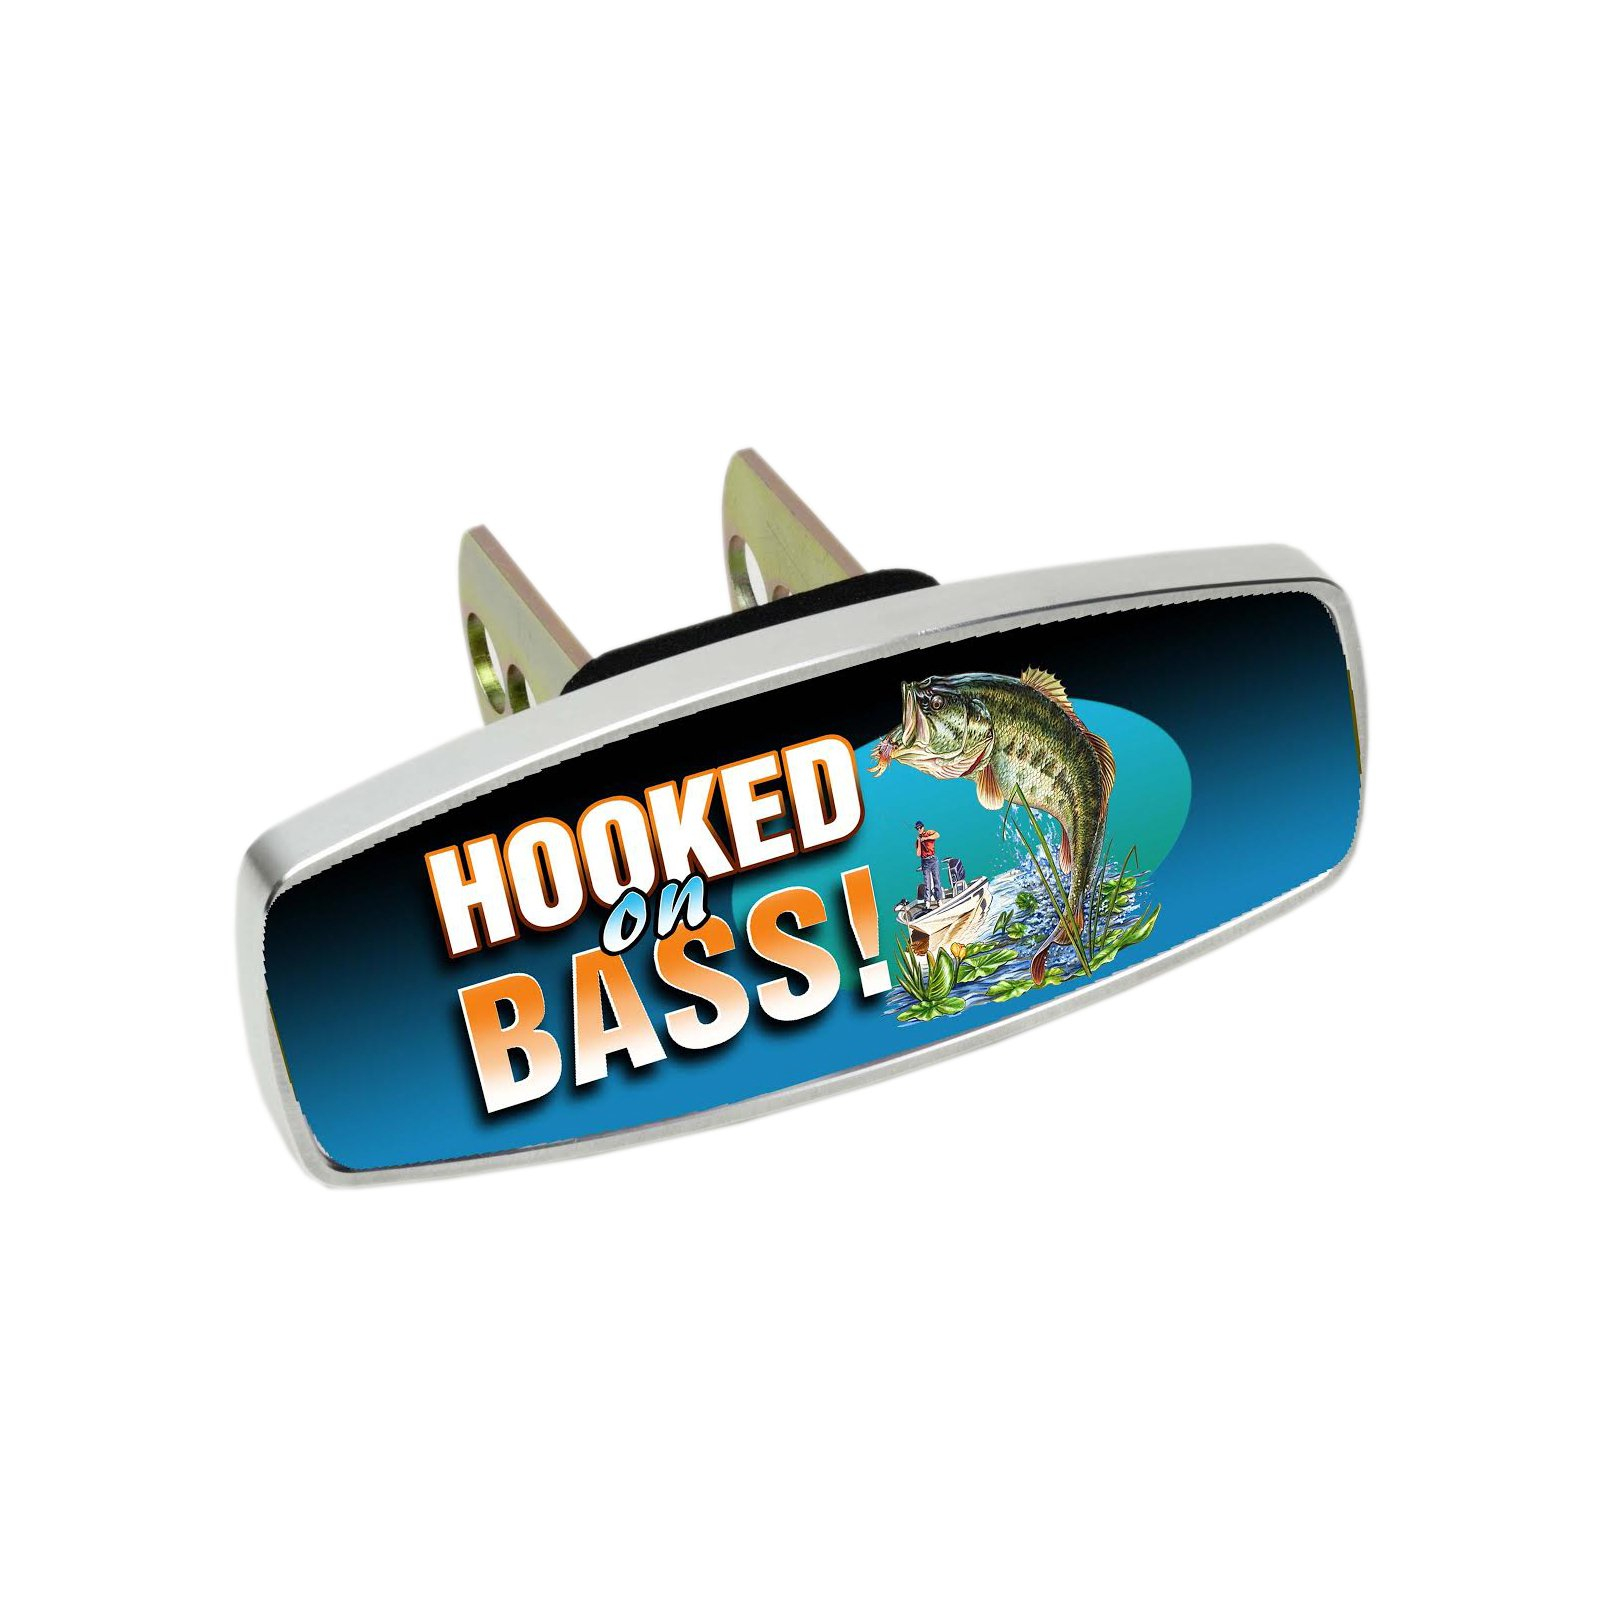 HitchMate Premier Series Hitch Cap Cover - Hooked on Bass